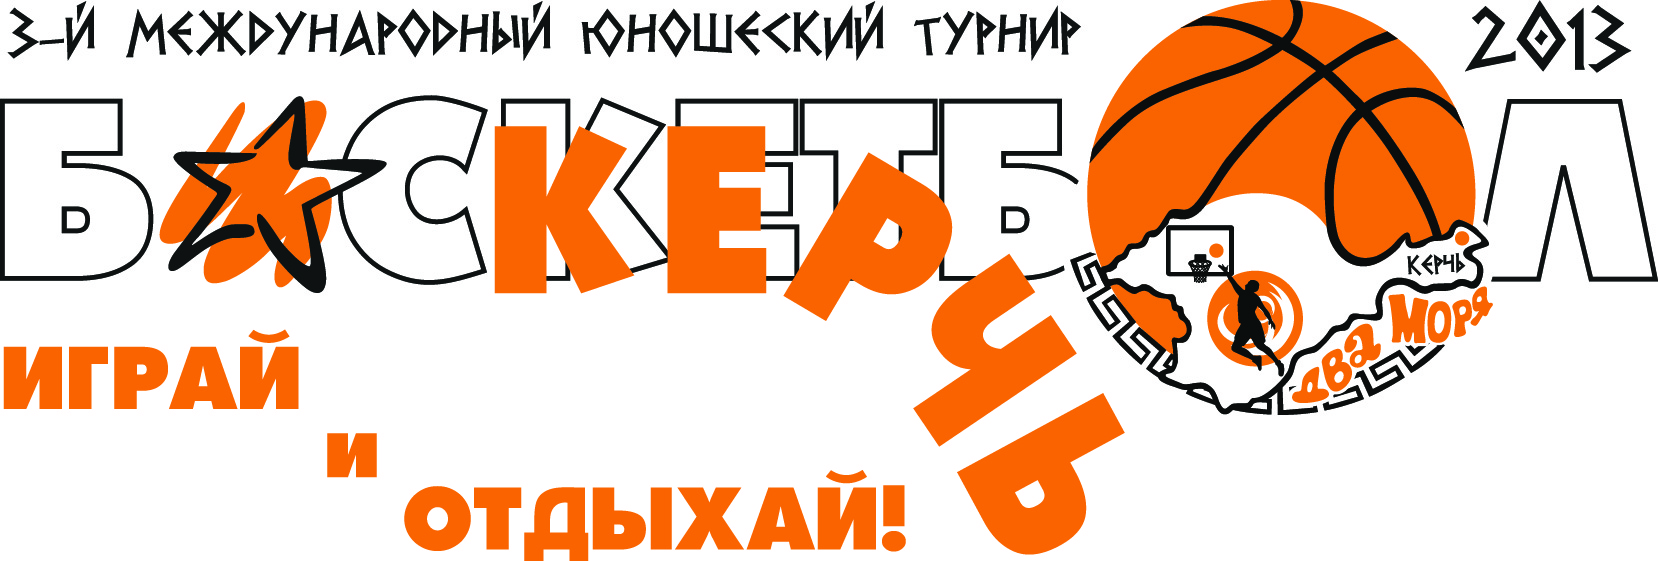 logo_basketbol_iii_Kerch